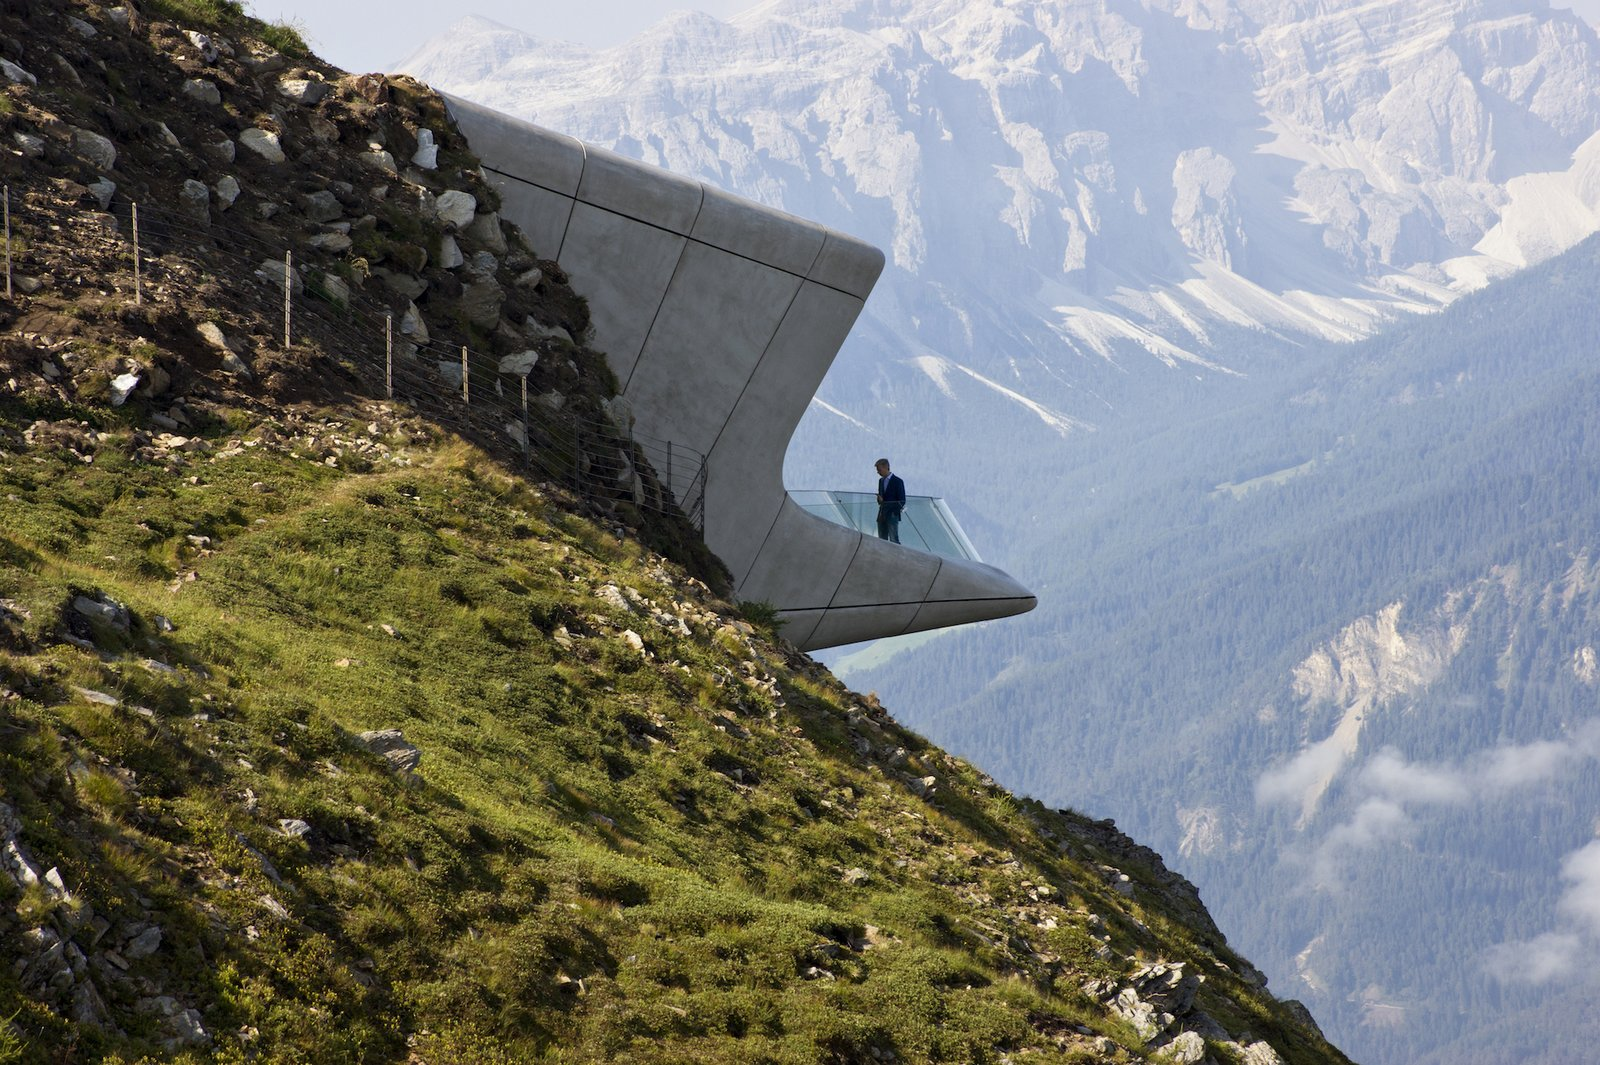 Photo 4 of 5 in Reinhold Messner: A Man and His Museums